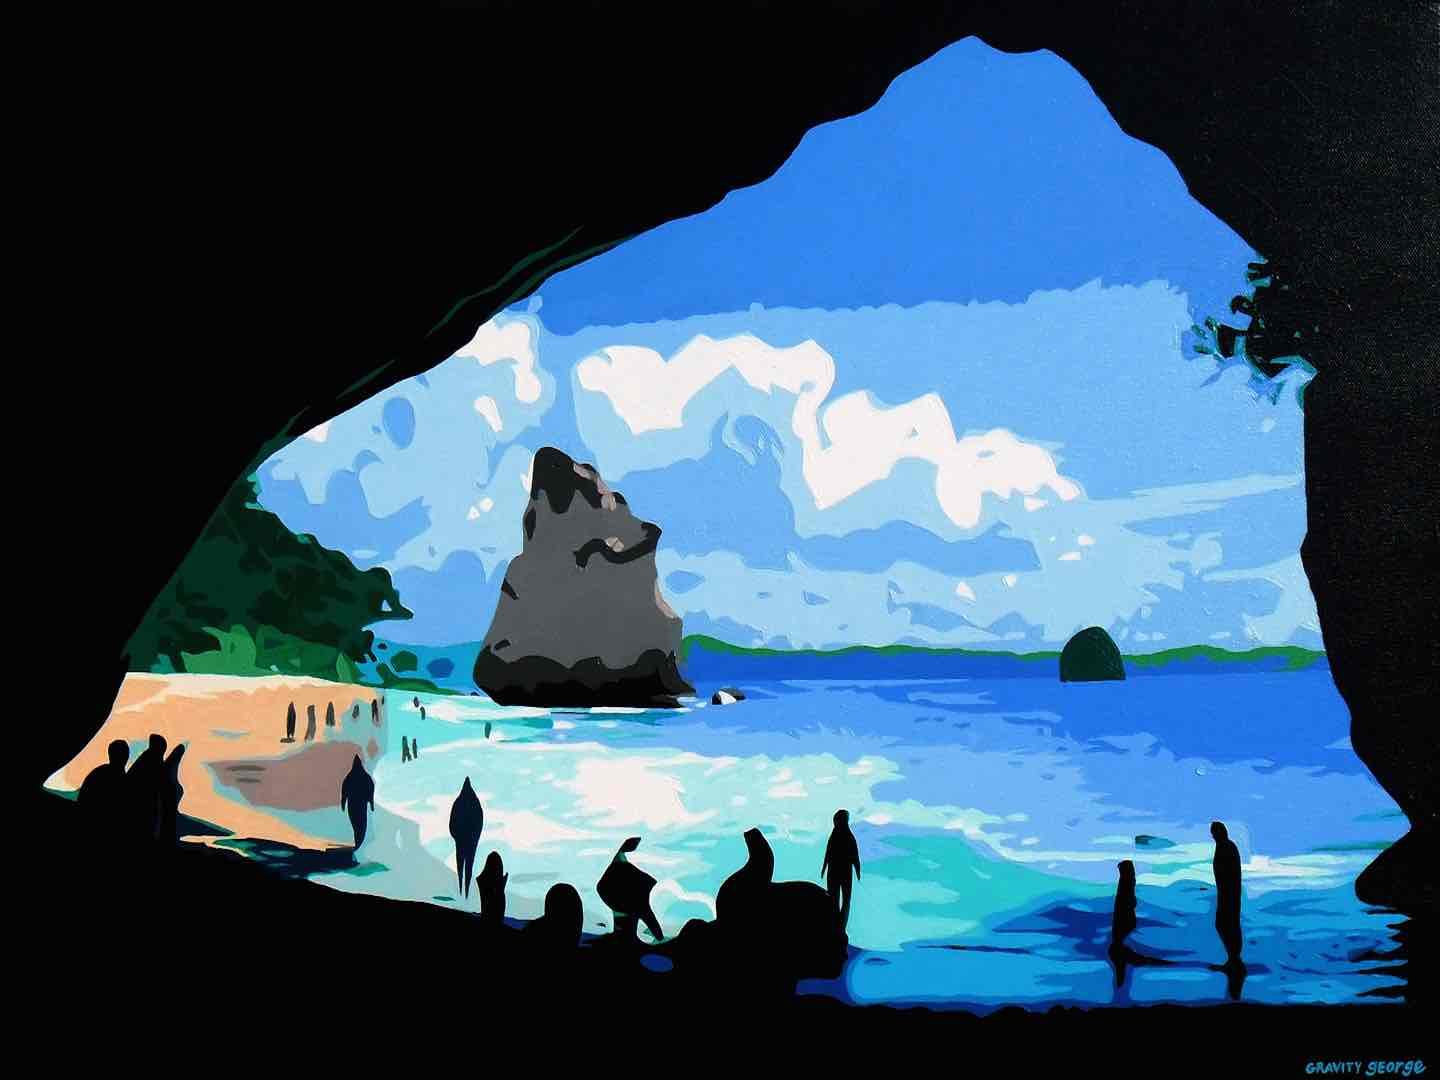 Web_AE205_Cathedral Cove_small_1440x1080@300dpi.jpg